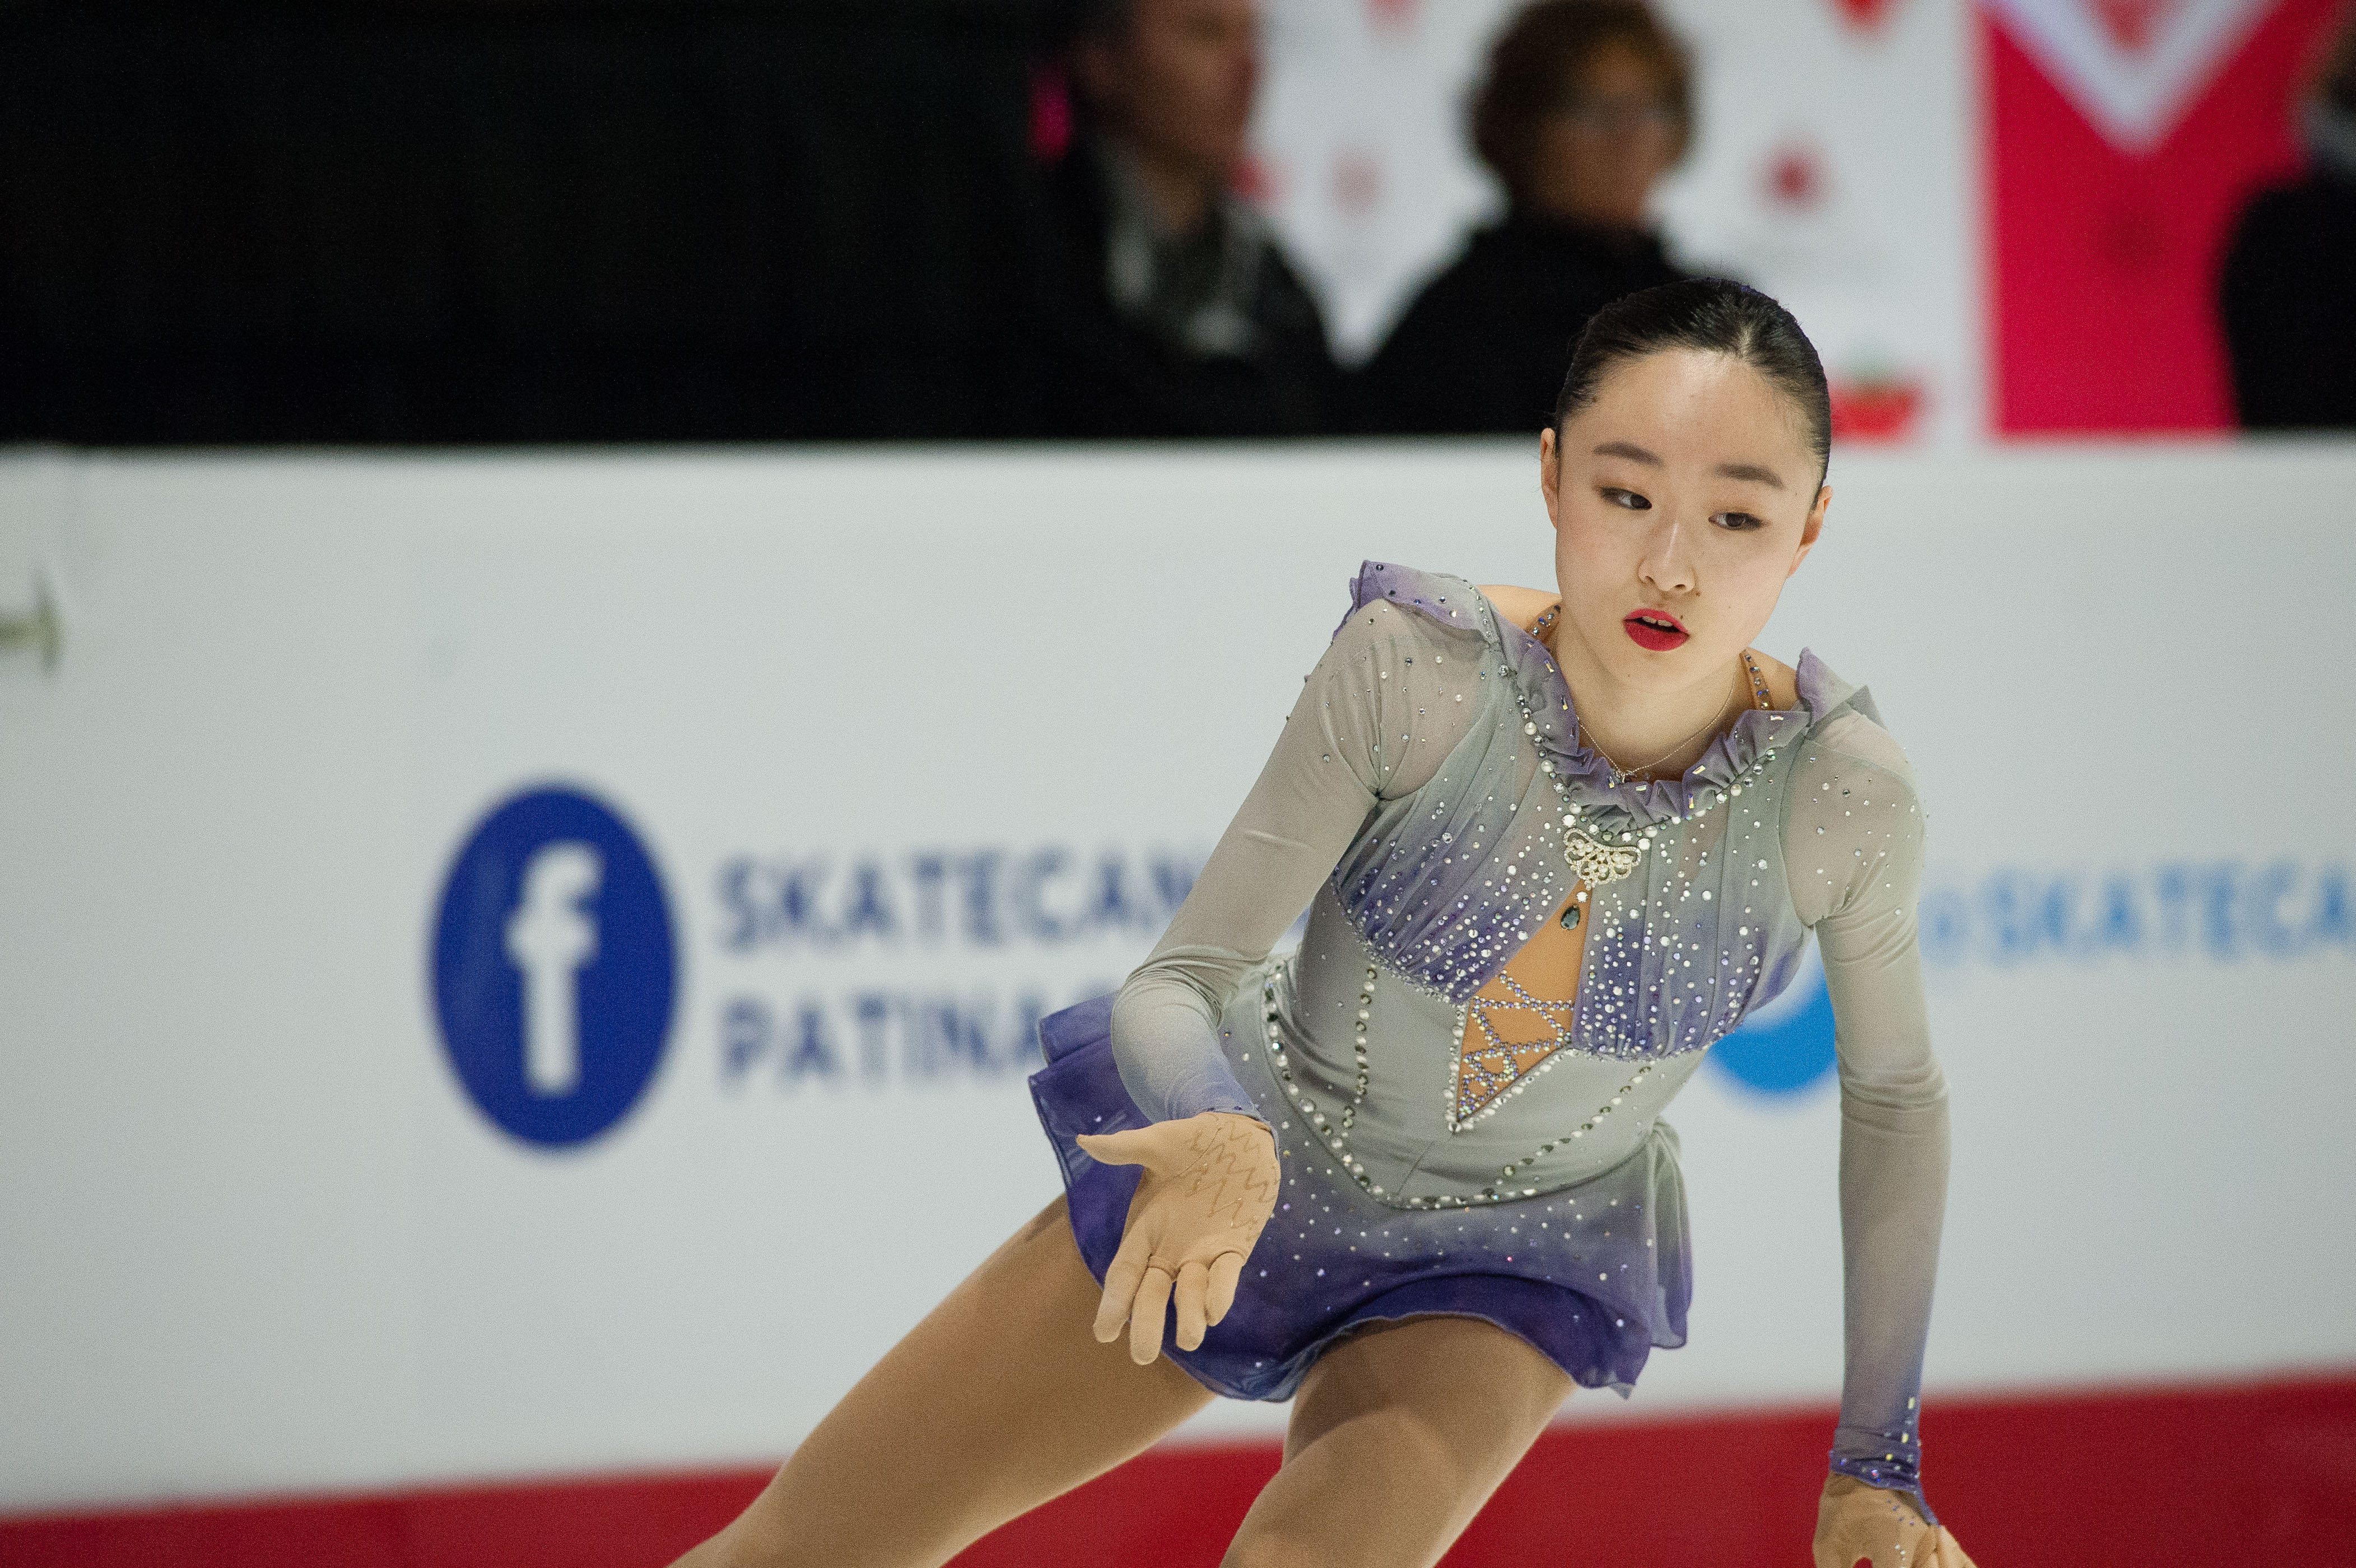 Vancouver's Sarah Tamura performs in the short program.